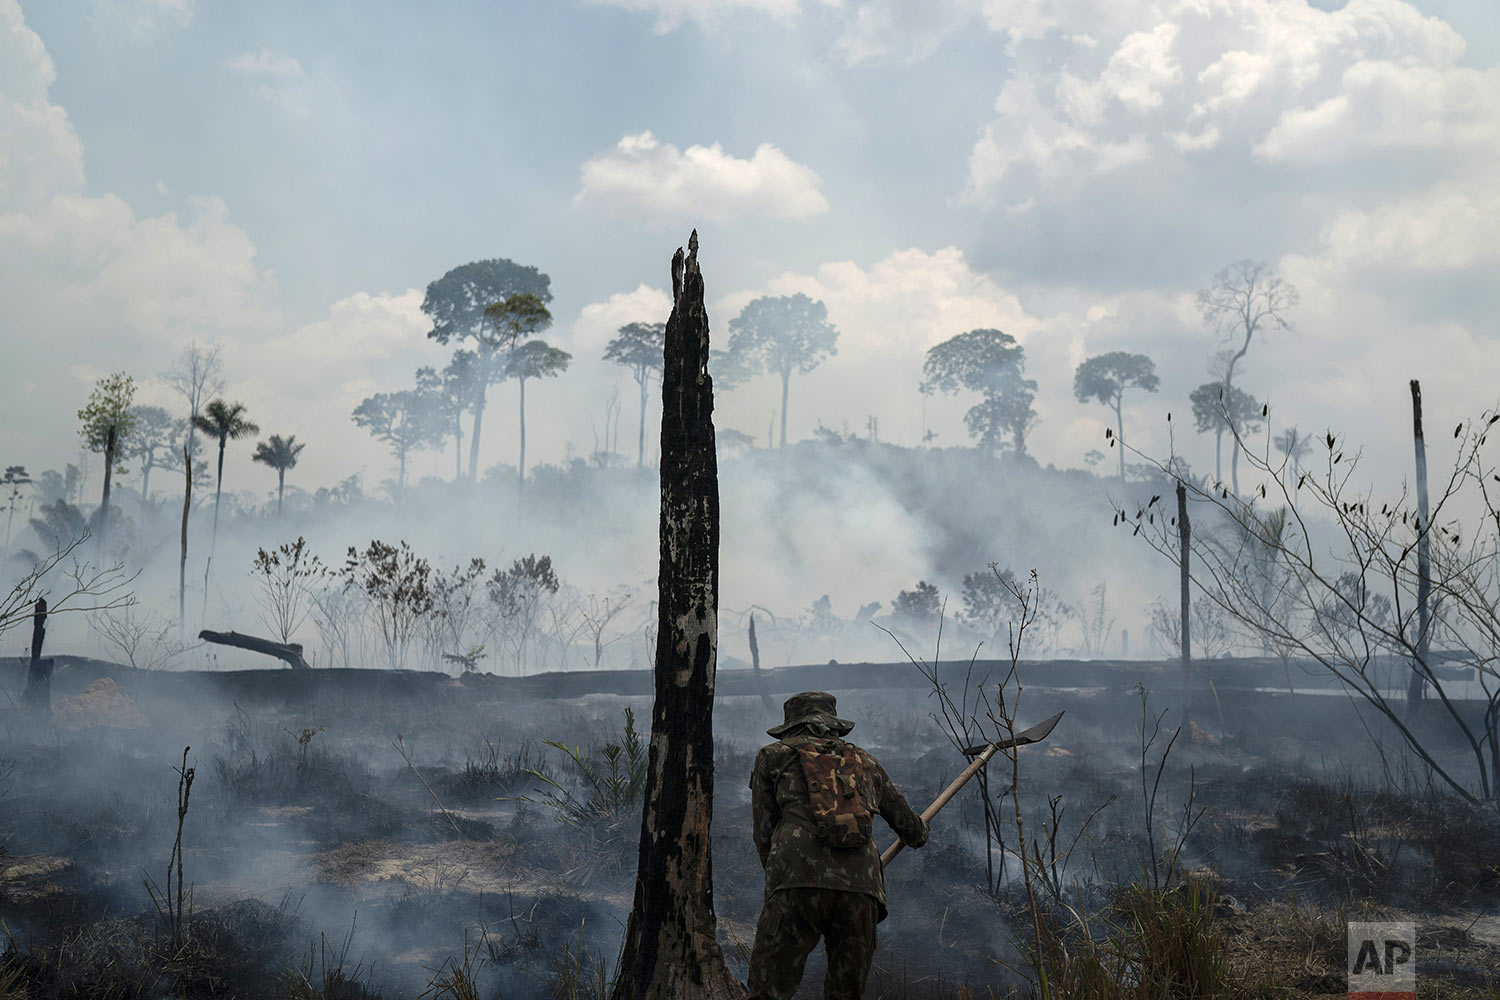 A Brazilian soldier puts out fires at the Nova Fronteira region in Novo Progresso, Brazil, Tuesday, Sept. 3, 2019. Brazilian President Jair Bolsonaro sent the military to help extinguish some fires. Last week, he passed a decree banning most fires for land-clearing for a period of 60 days, although he later limited the ban to the Amazon. (AP Photo/Leo Correa)